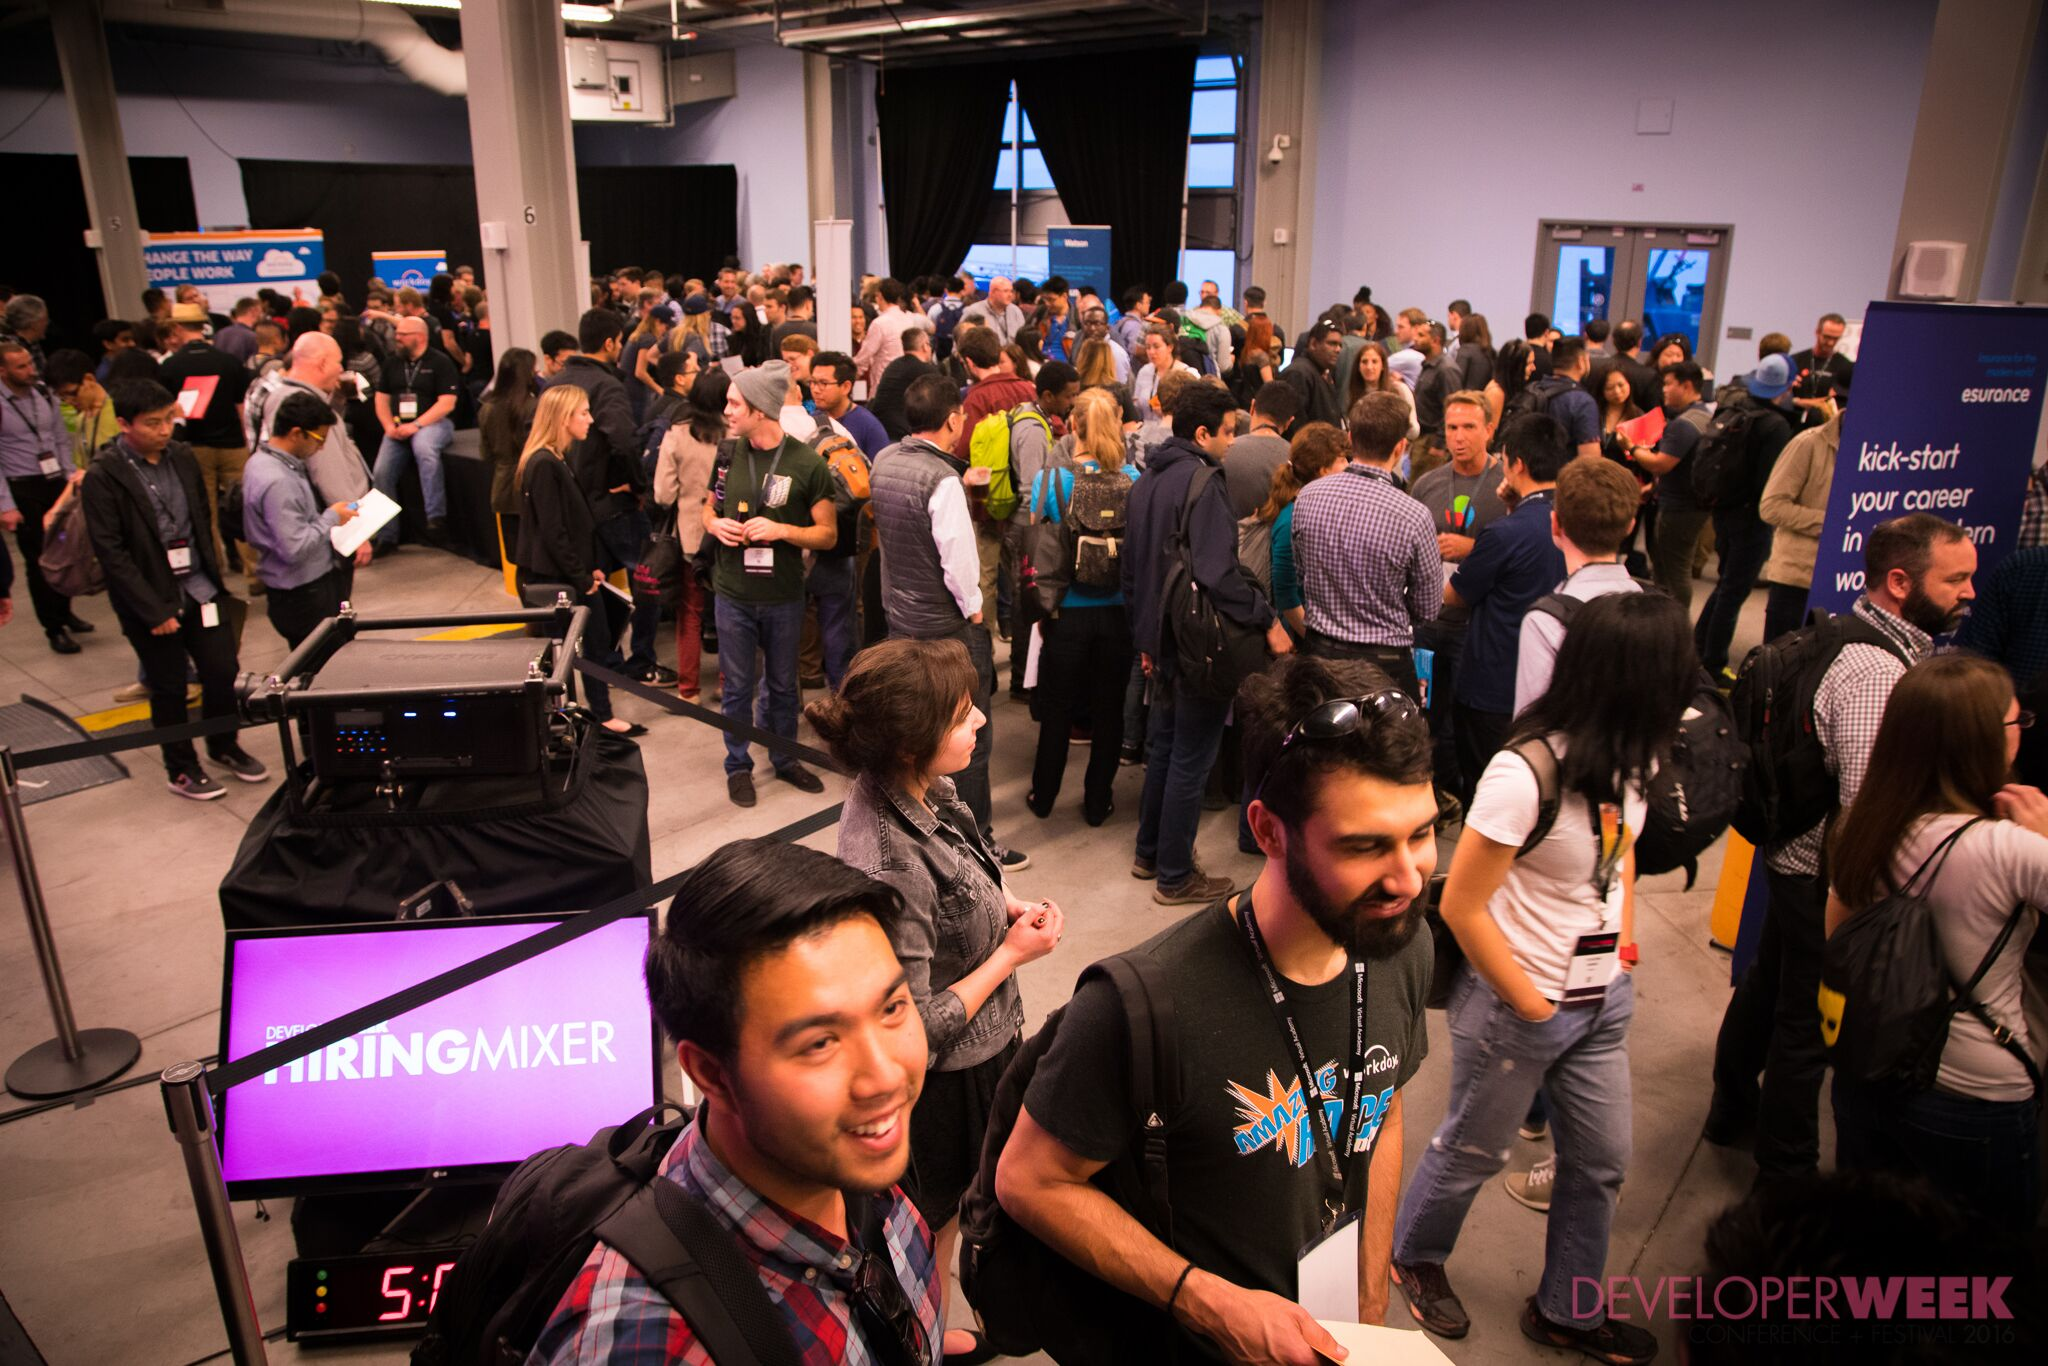 DeveloperWeek conference for developers NYC